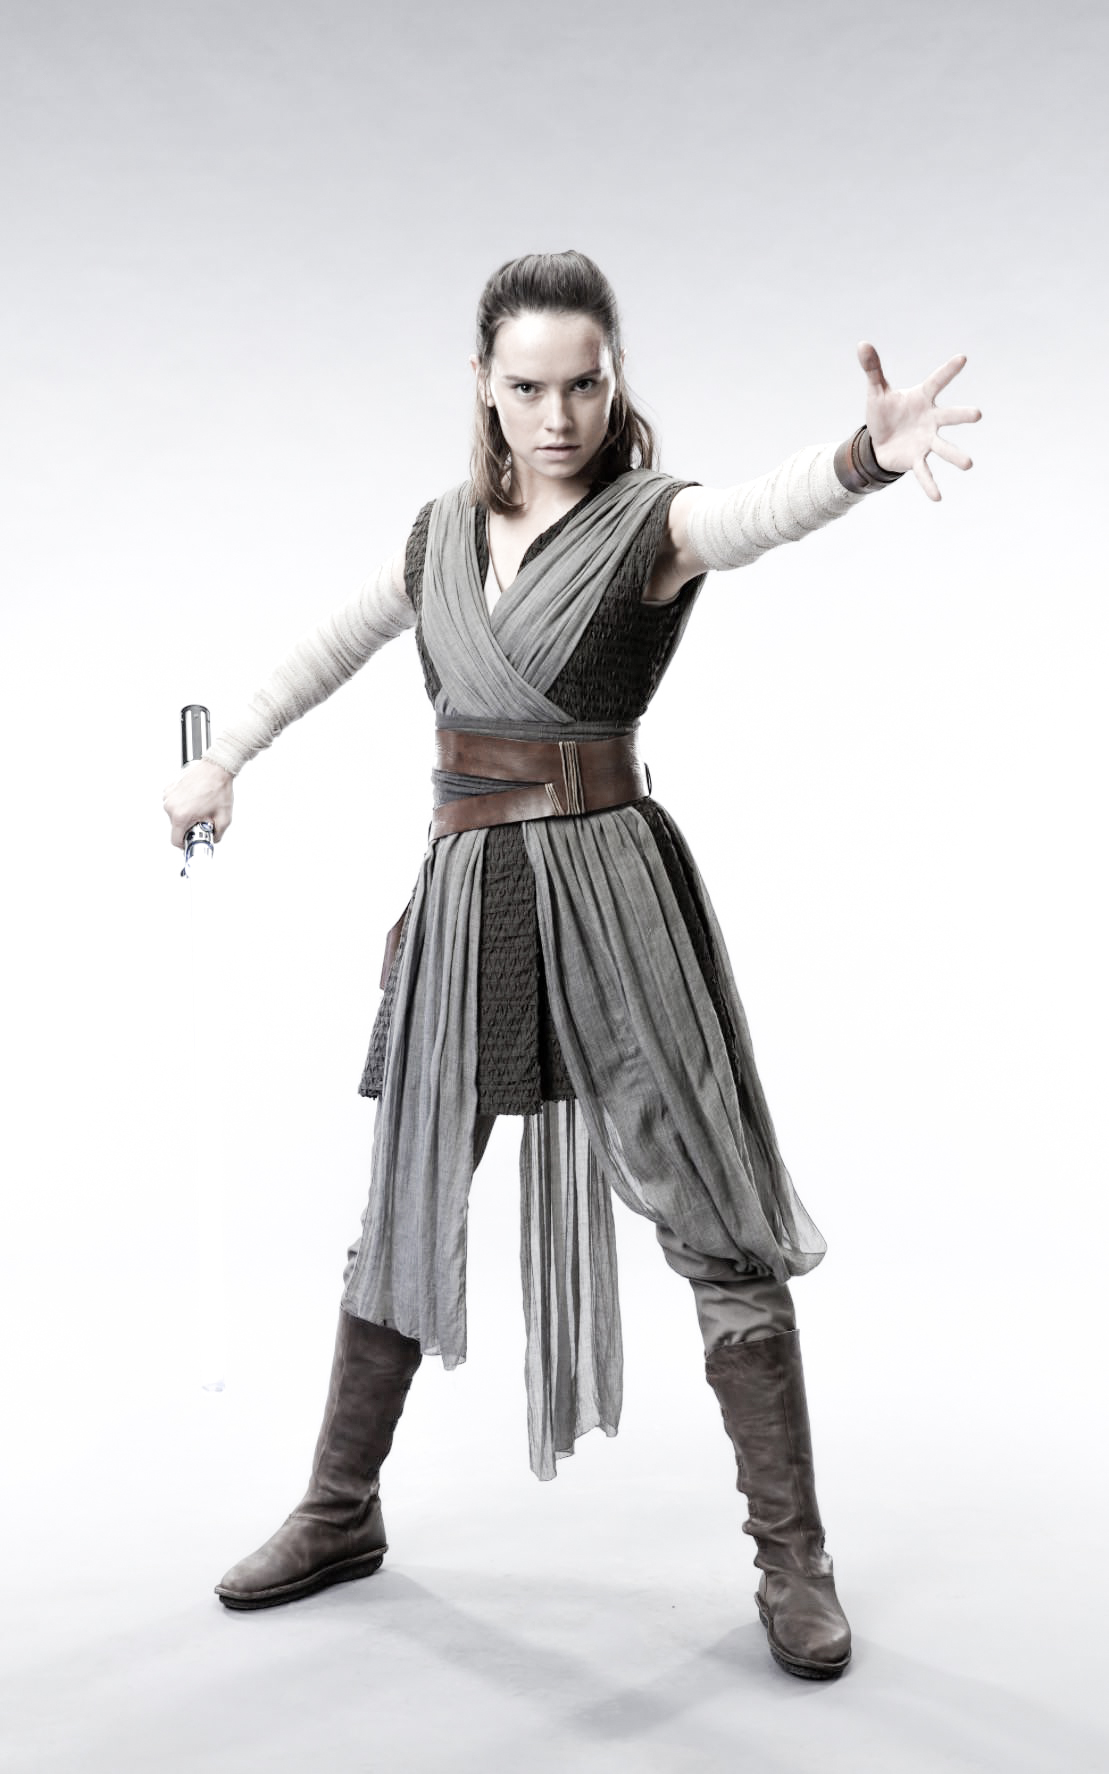 Star Wars The Last Jedi new characters images - YouLoveIt.com